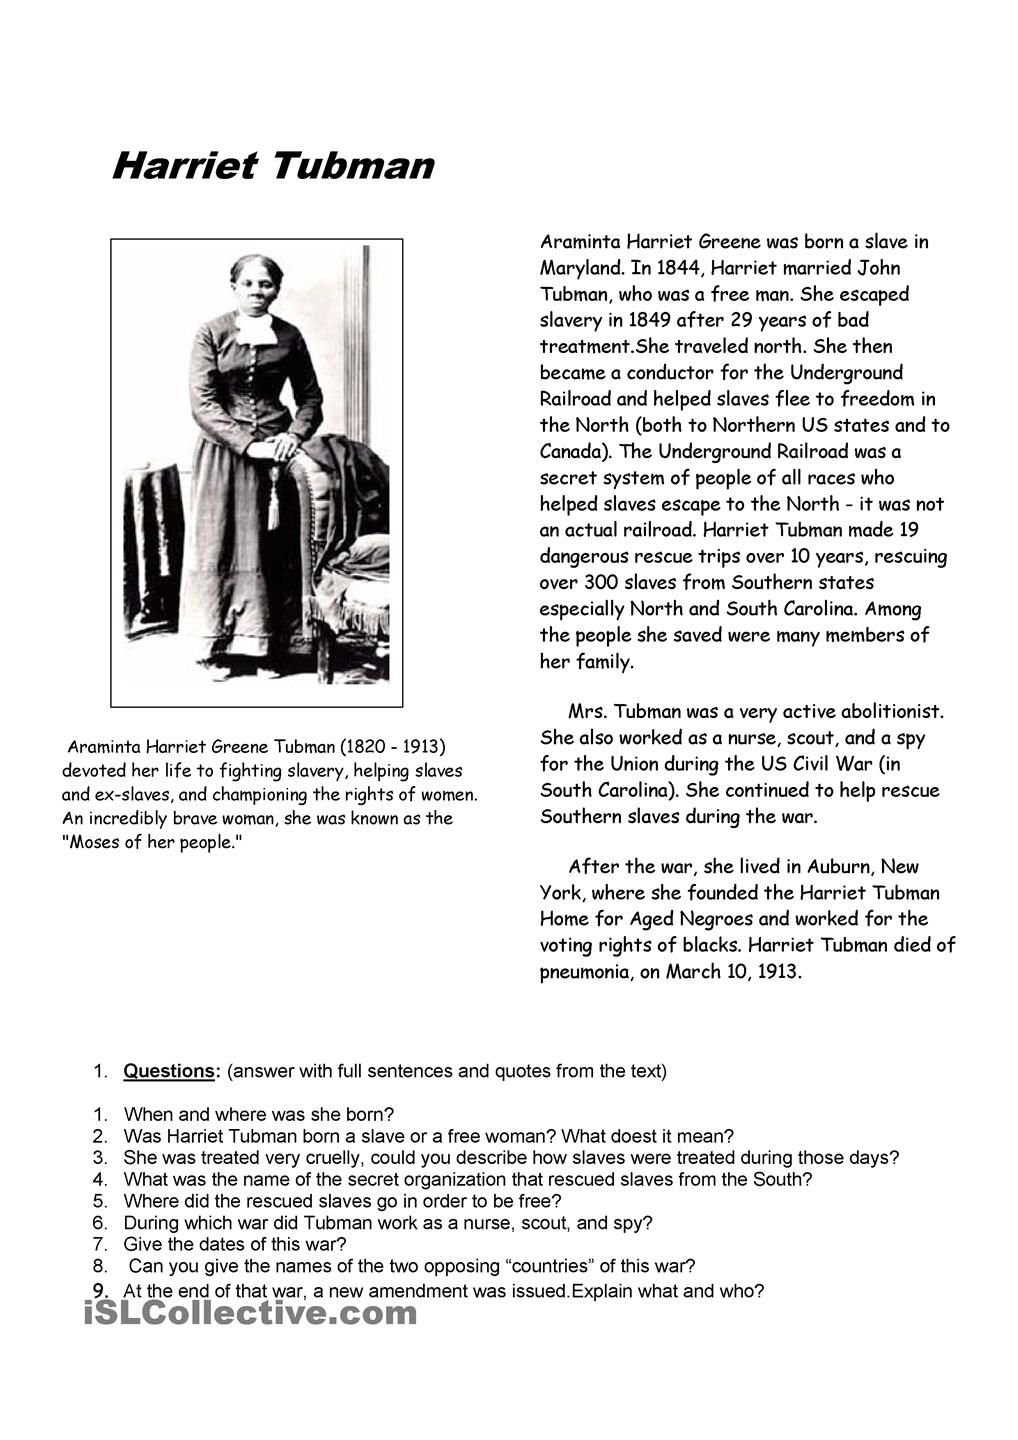 Worksheets Harriet Tubman Worksheets harriet tubman civil rights icon tubmanconductor of the underground railroad pinterest teacher fo